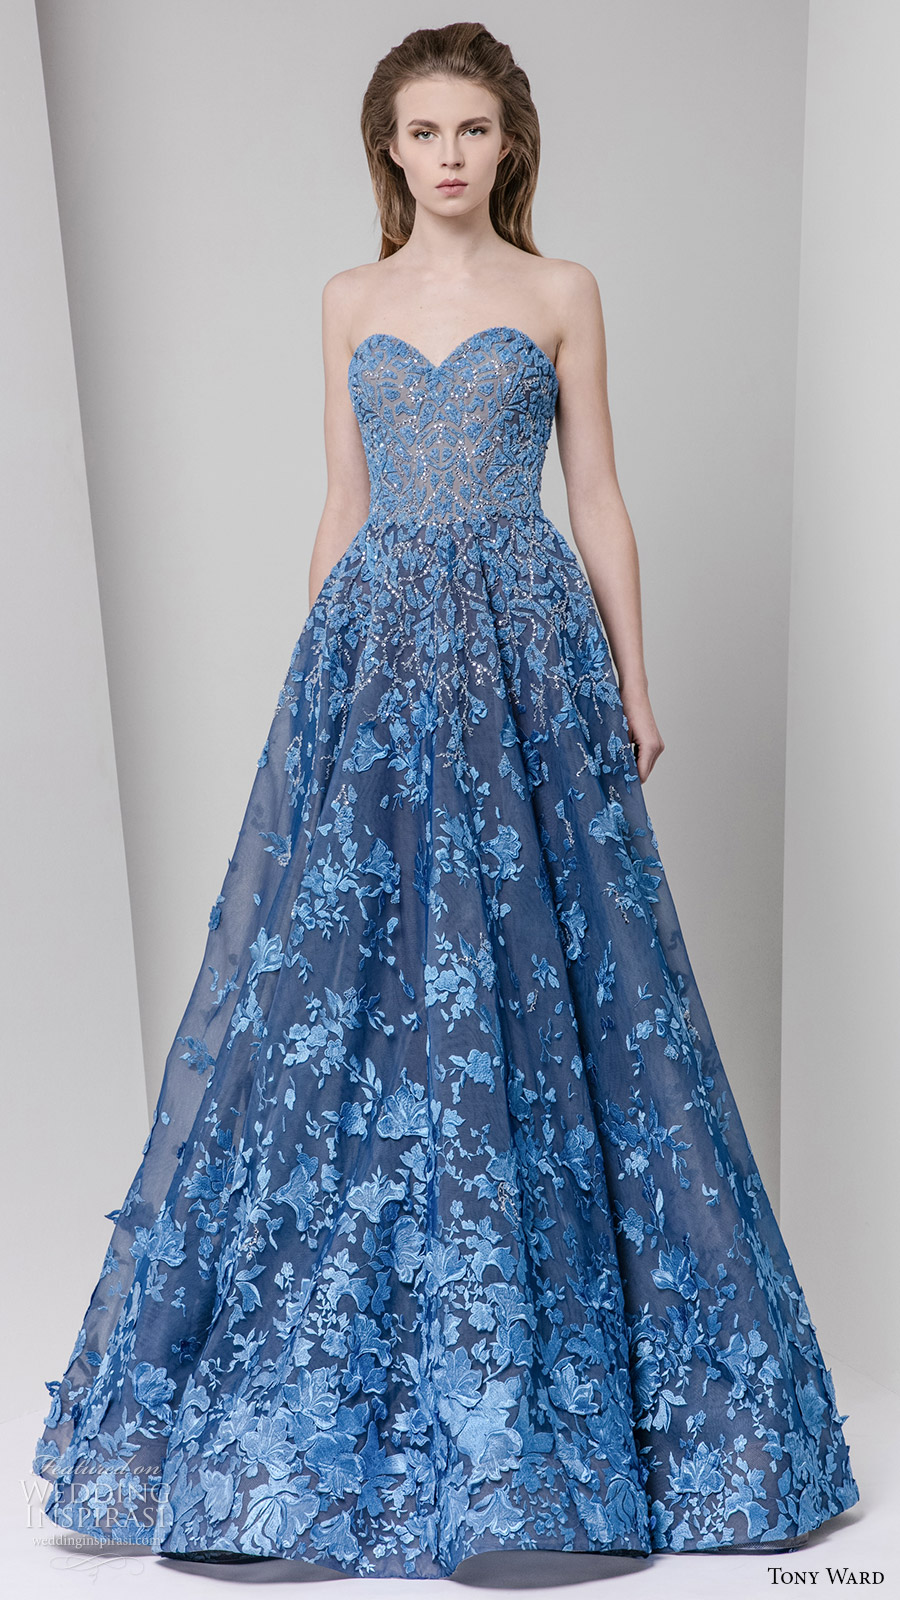 tony ward fall 2016 rtw strapless sweetheart a line gown blue embellished